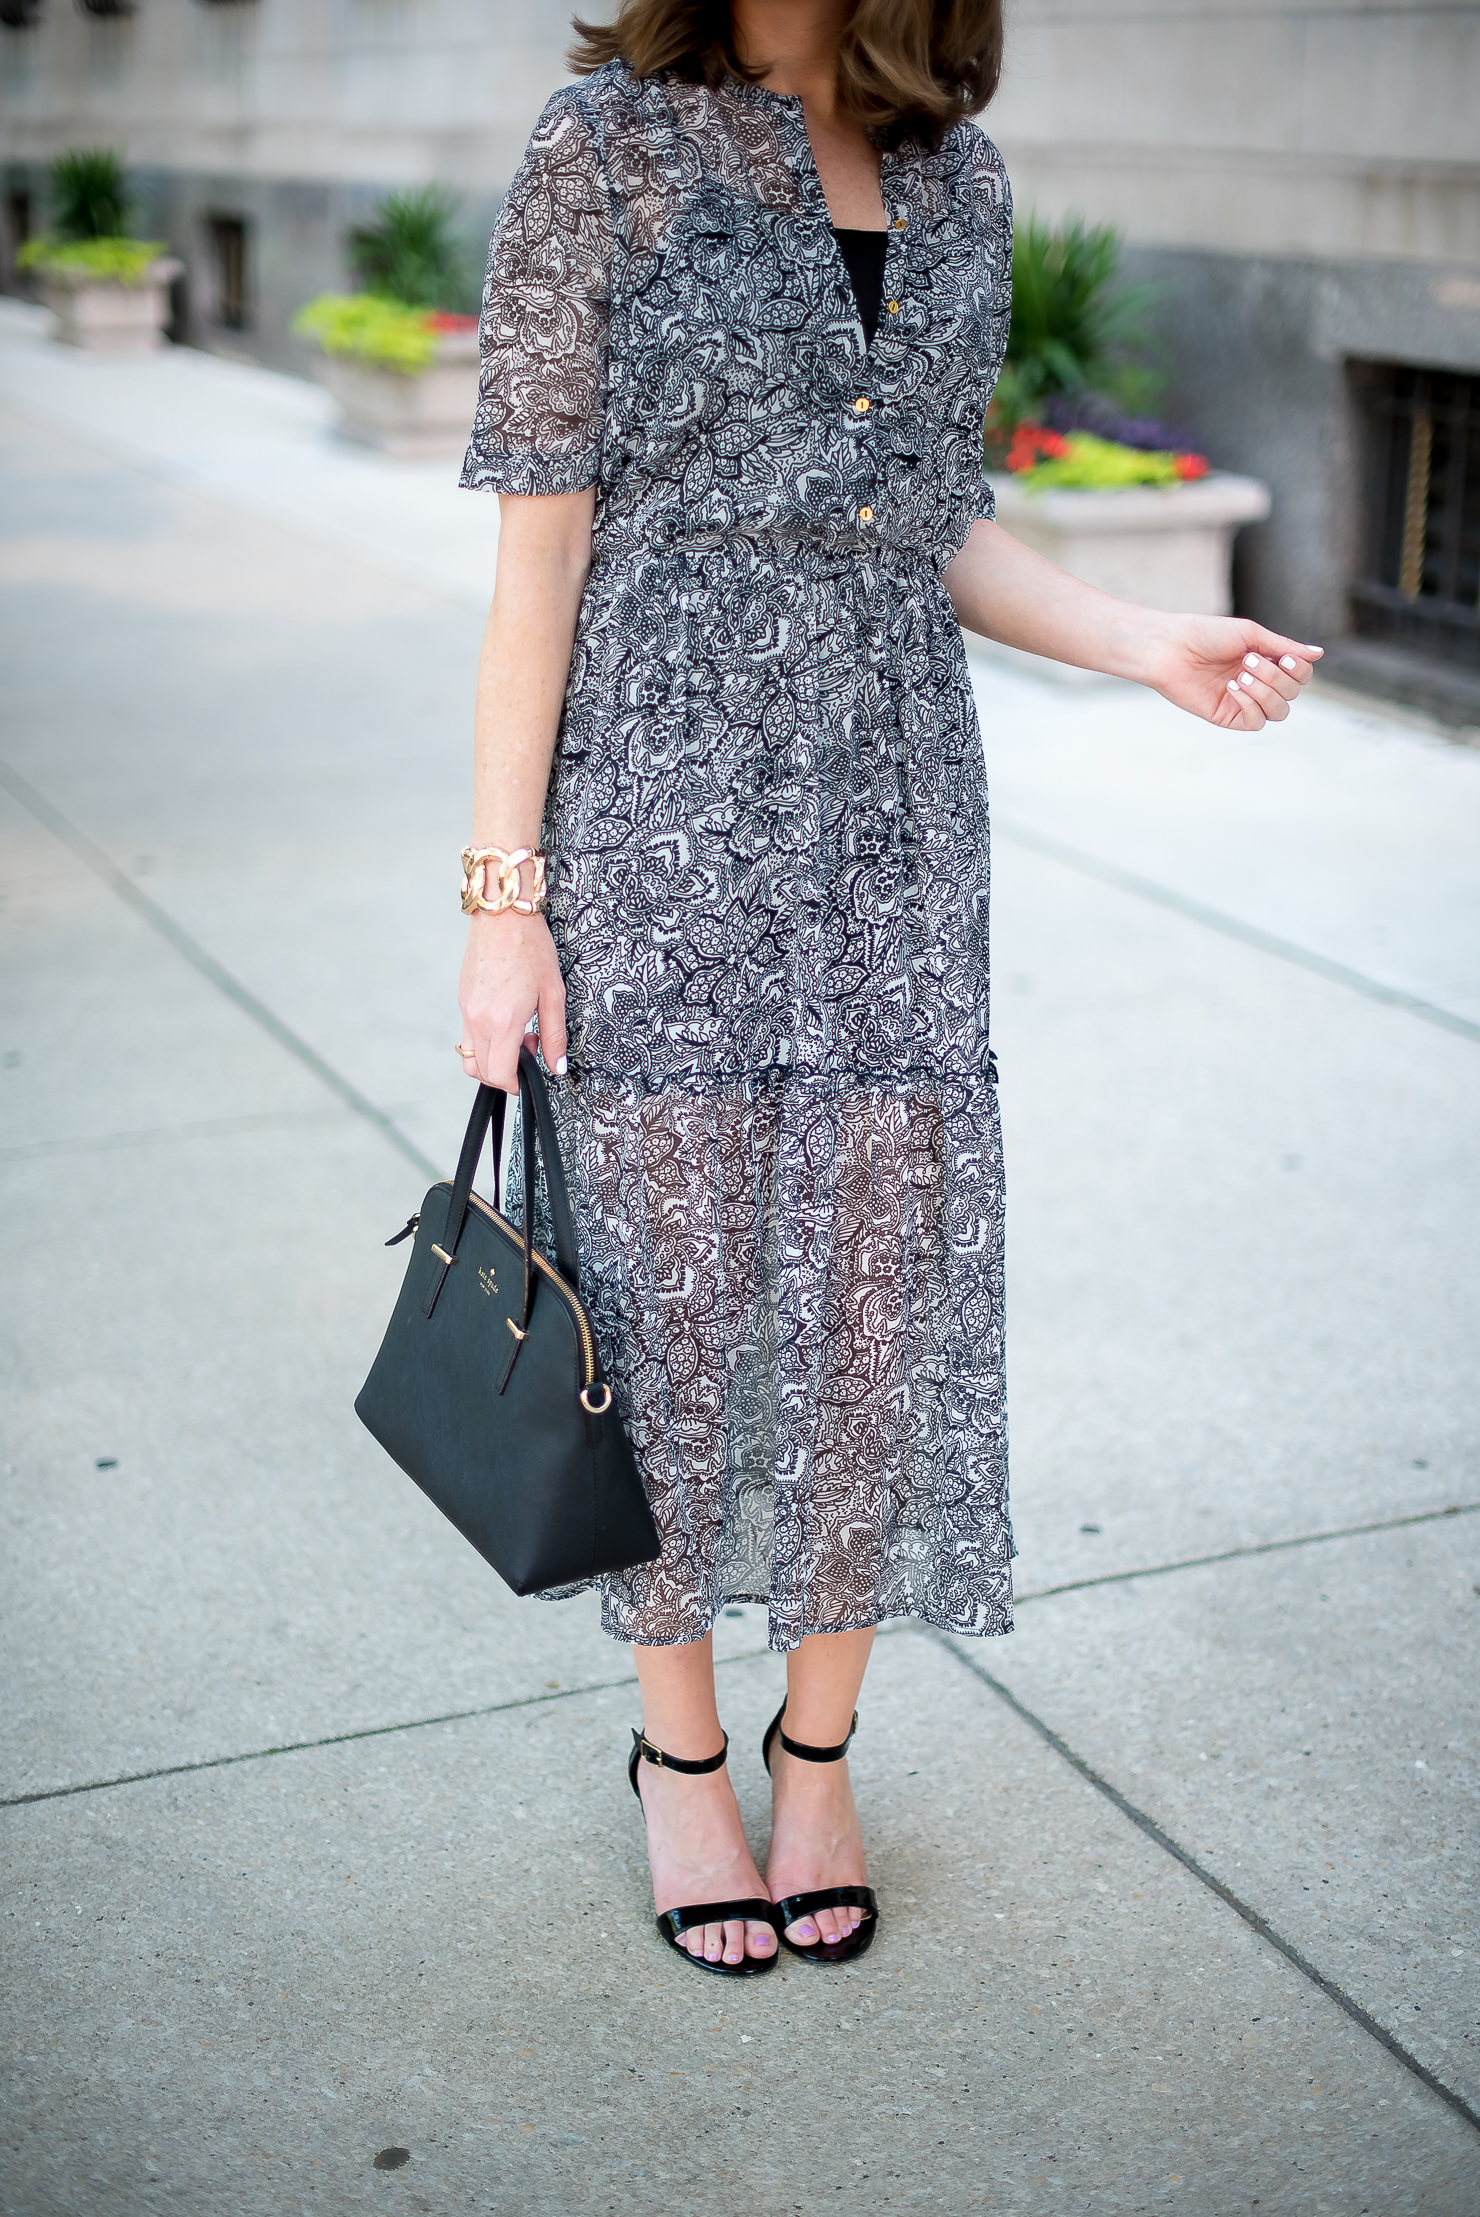 target-who-what-wear-printed-midi-dress-classic-feminine-ladylike-kate-spade-cedar-maise-gold-details-chicago-drake-hotel-13